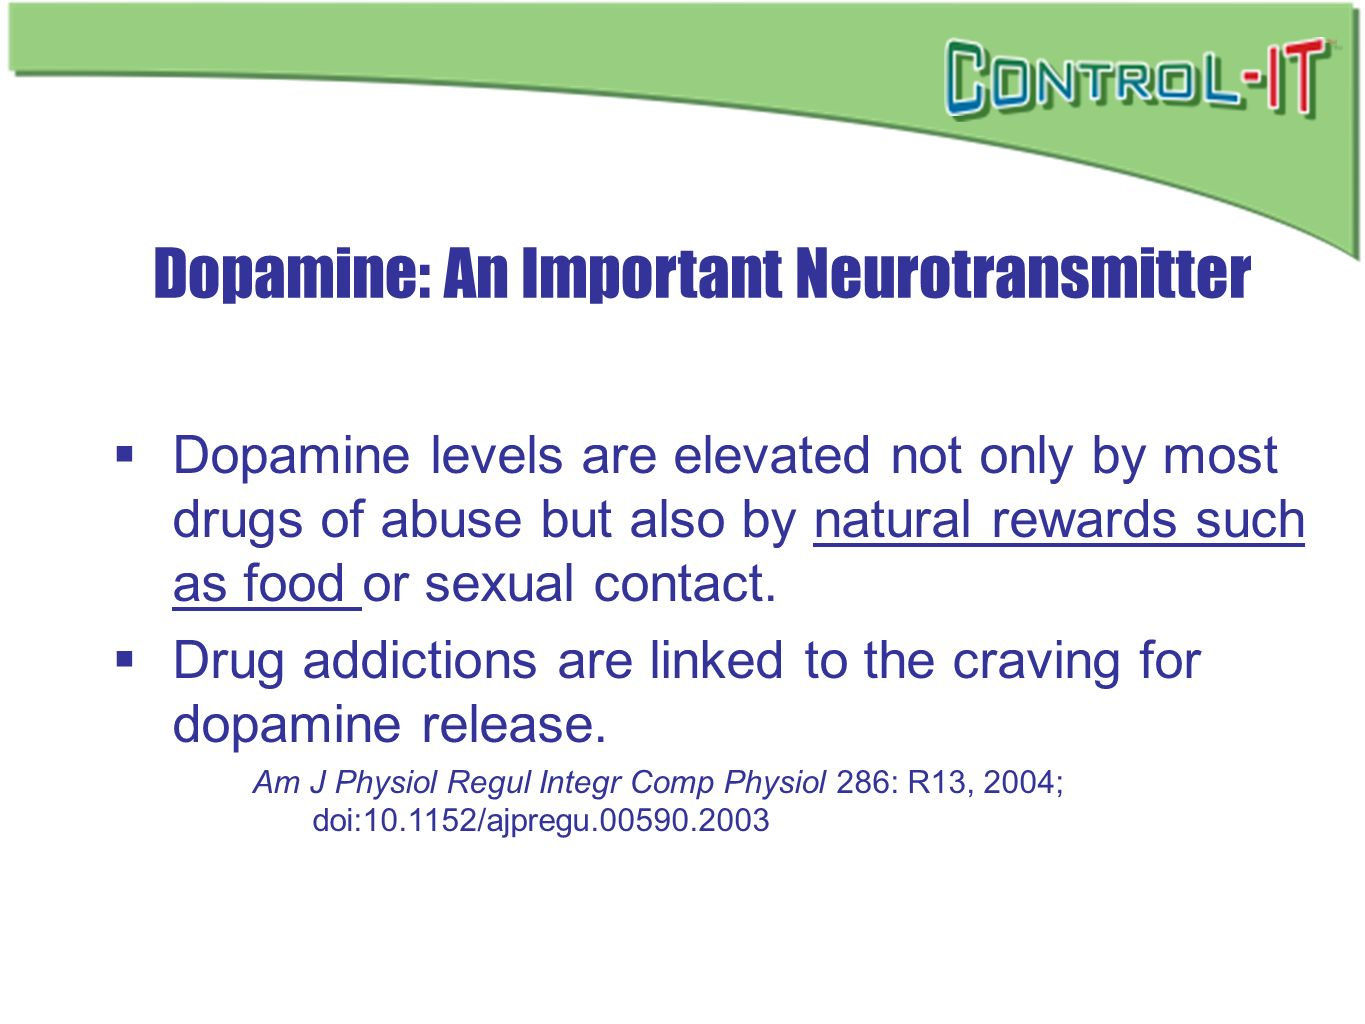 Dopamine: An Important Neurotransmitter Dopamine levels are elevated not only by most drugs of abuse but also by natural rewards such as food or sexua